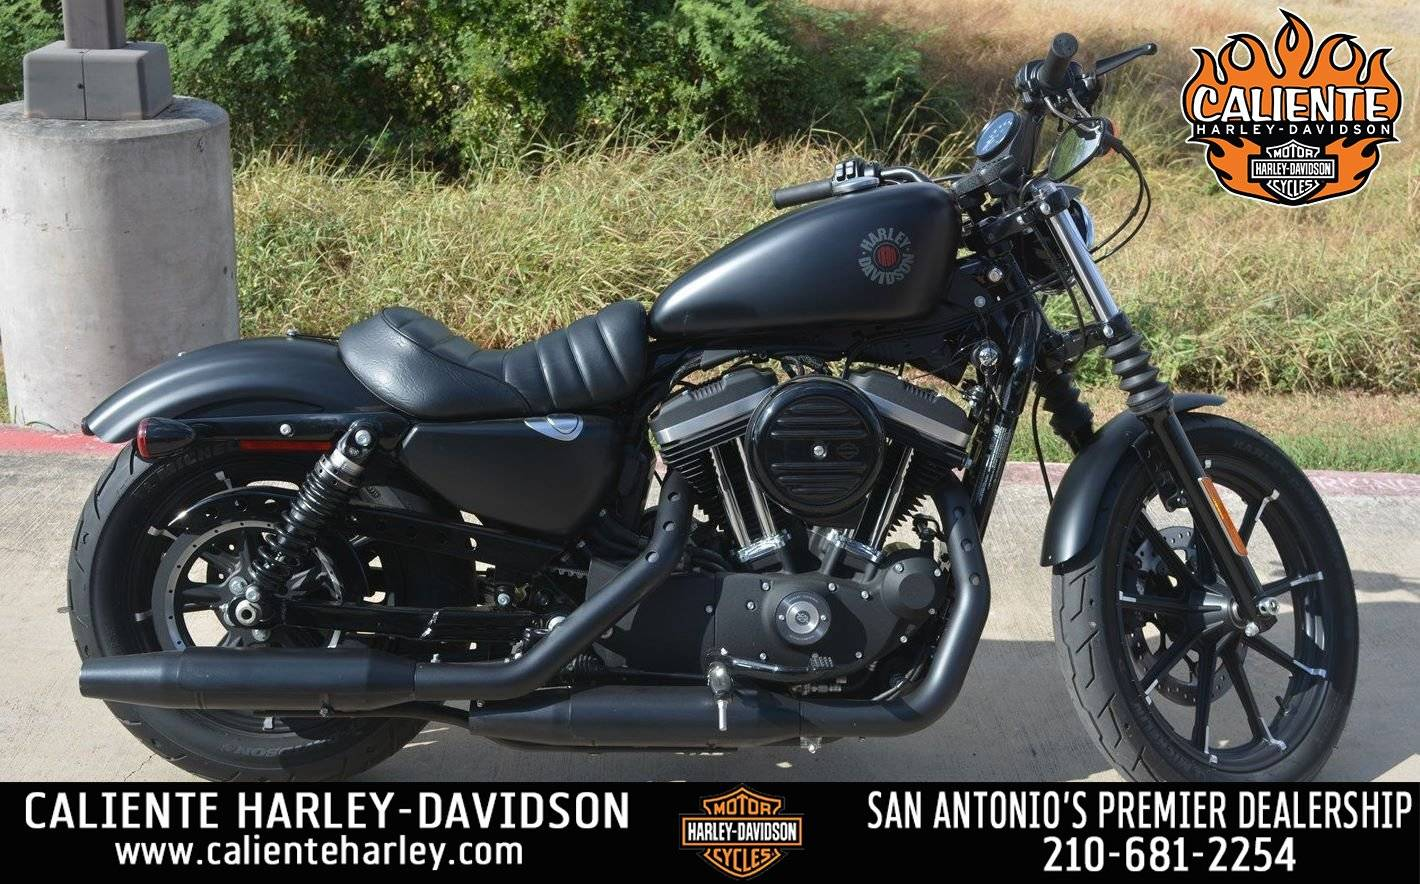 Used 2019 Harley Davidson Iron 883 Motorcycles In San Antonio Tx 421857 Black Denim